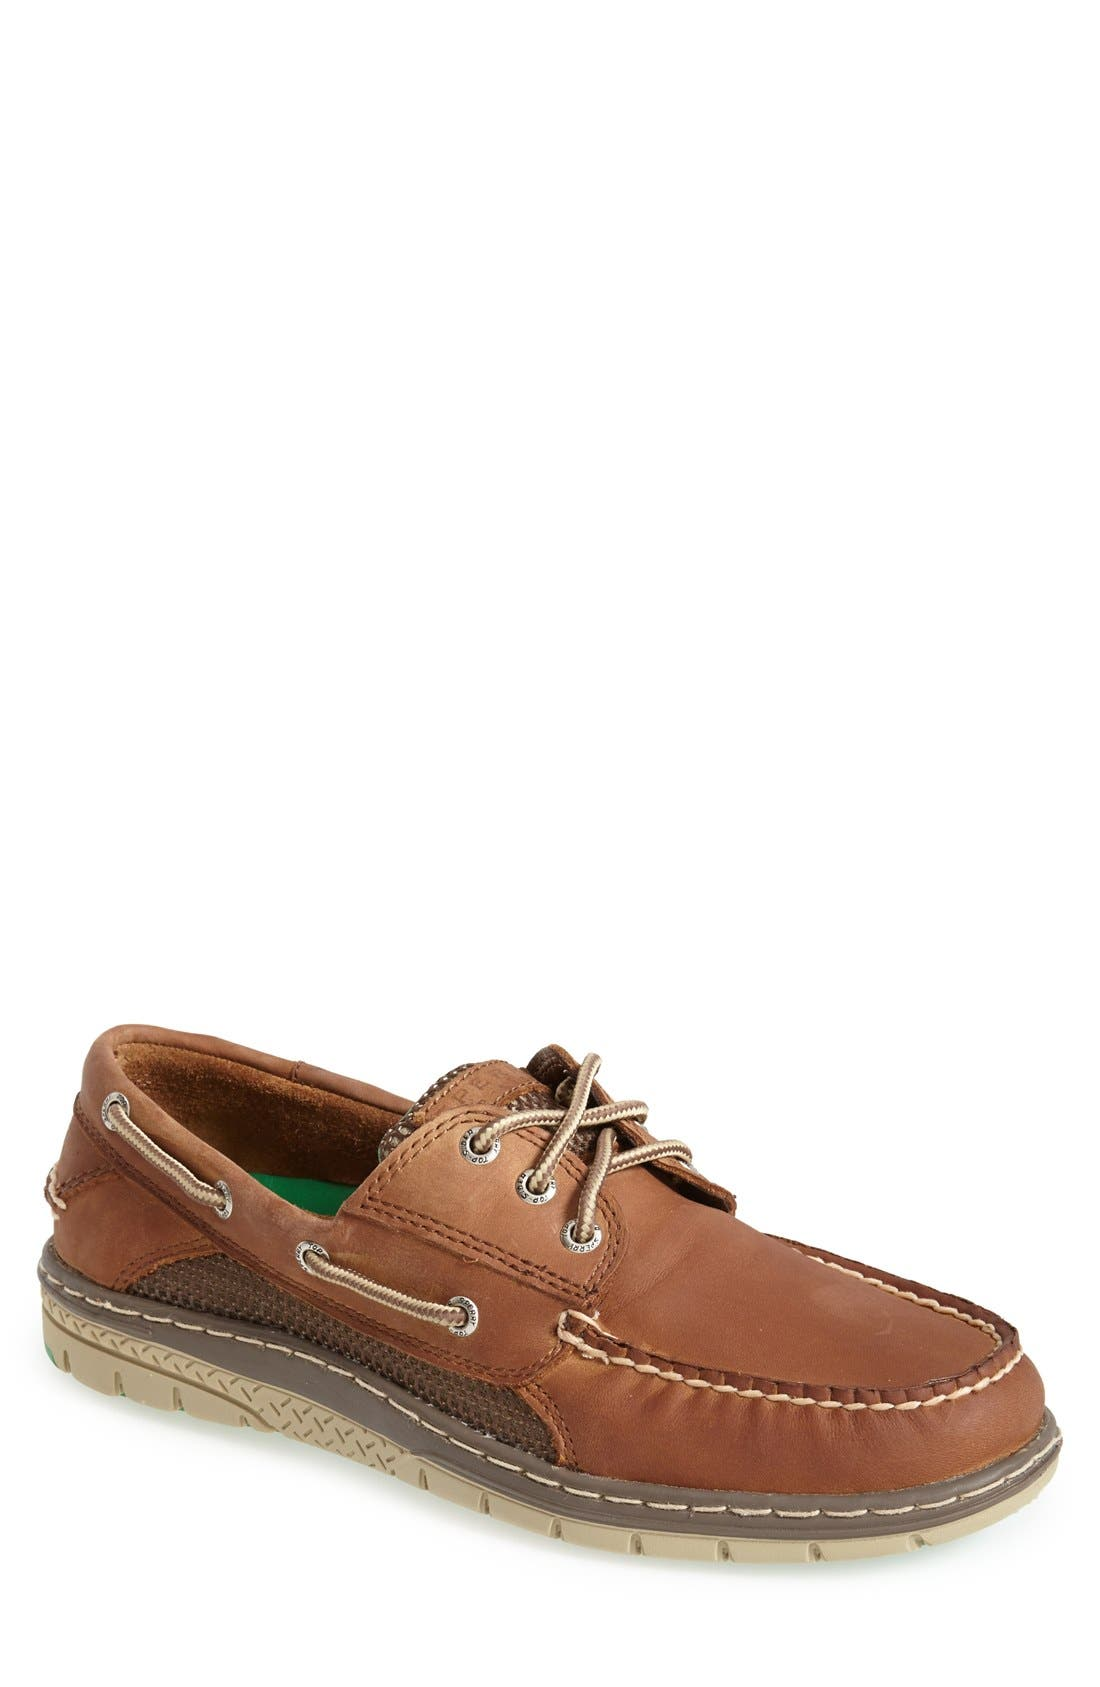 'Billfish Ultralite' Boat Shoe,                             Main thumbnail 13, color,